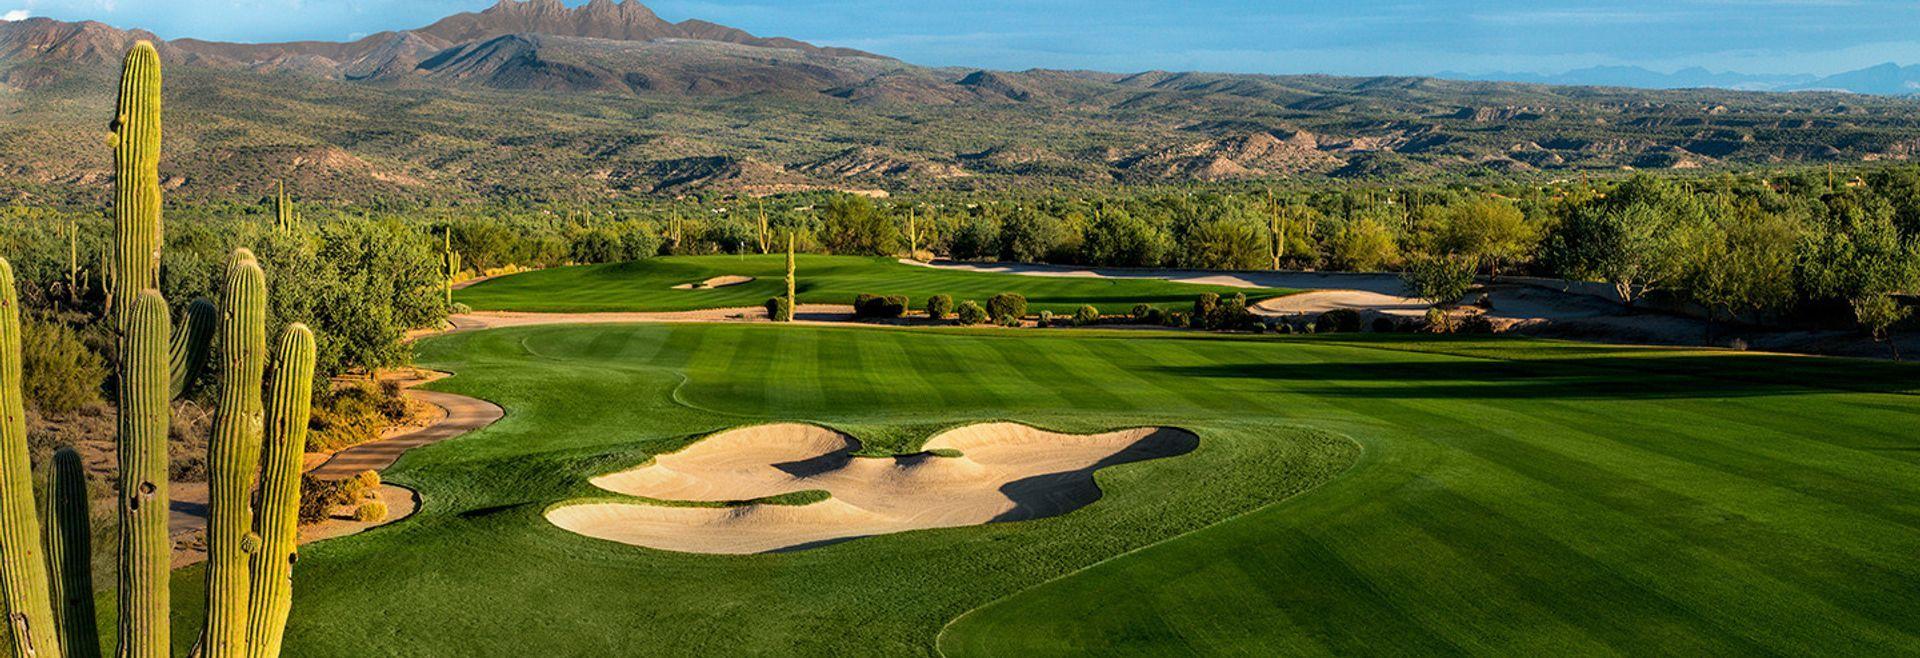 Golf Course at 55+ community Trilogy Verde River:Verde River Golf Course